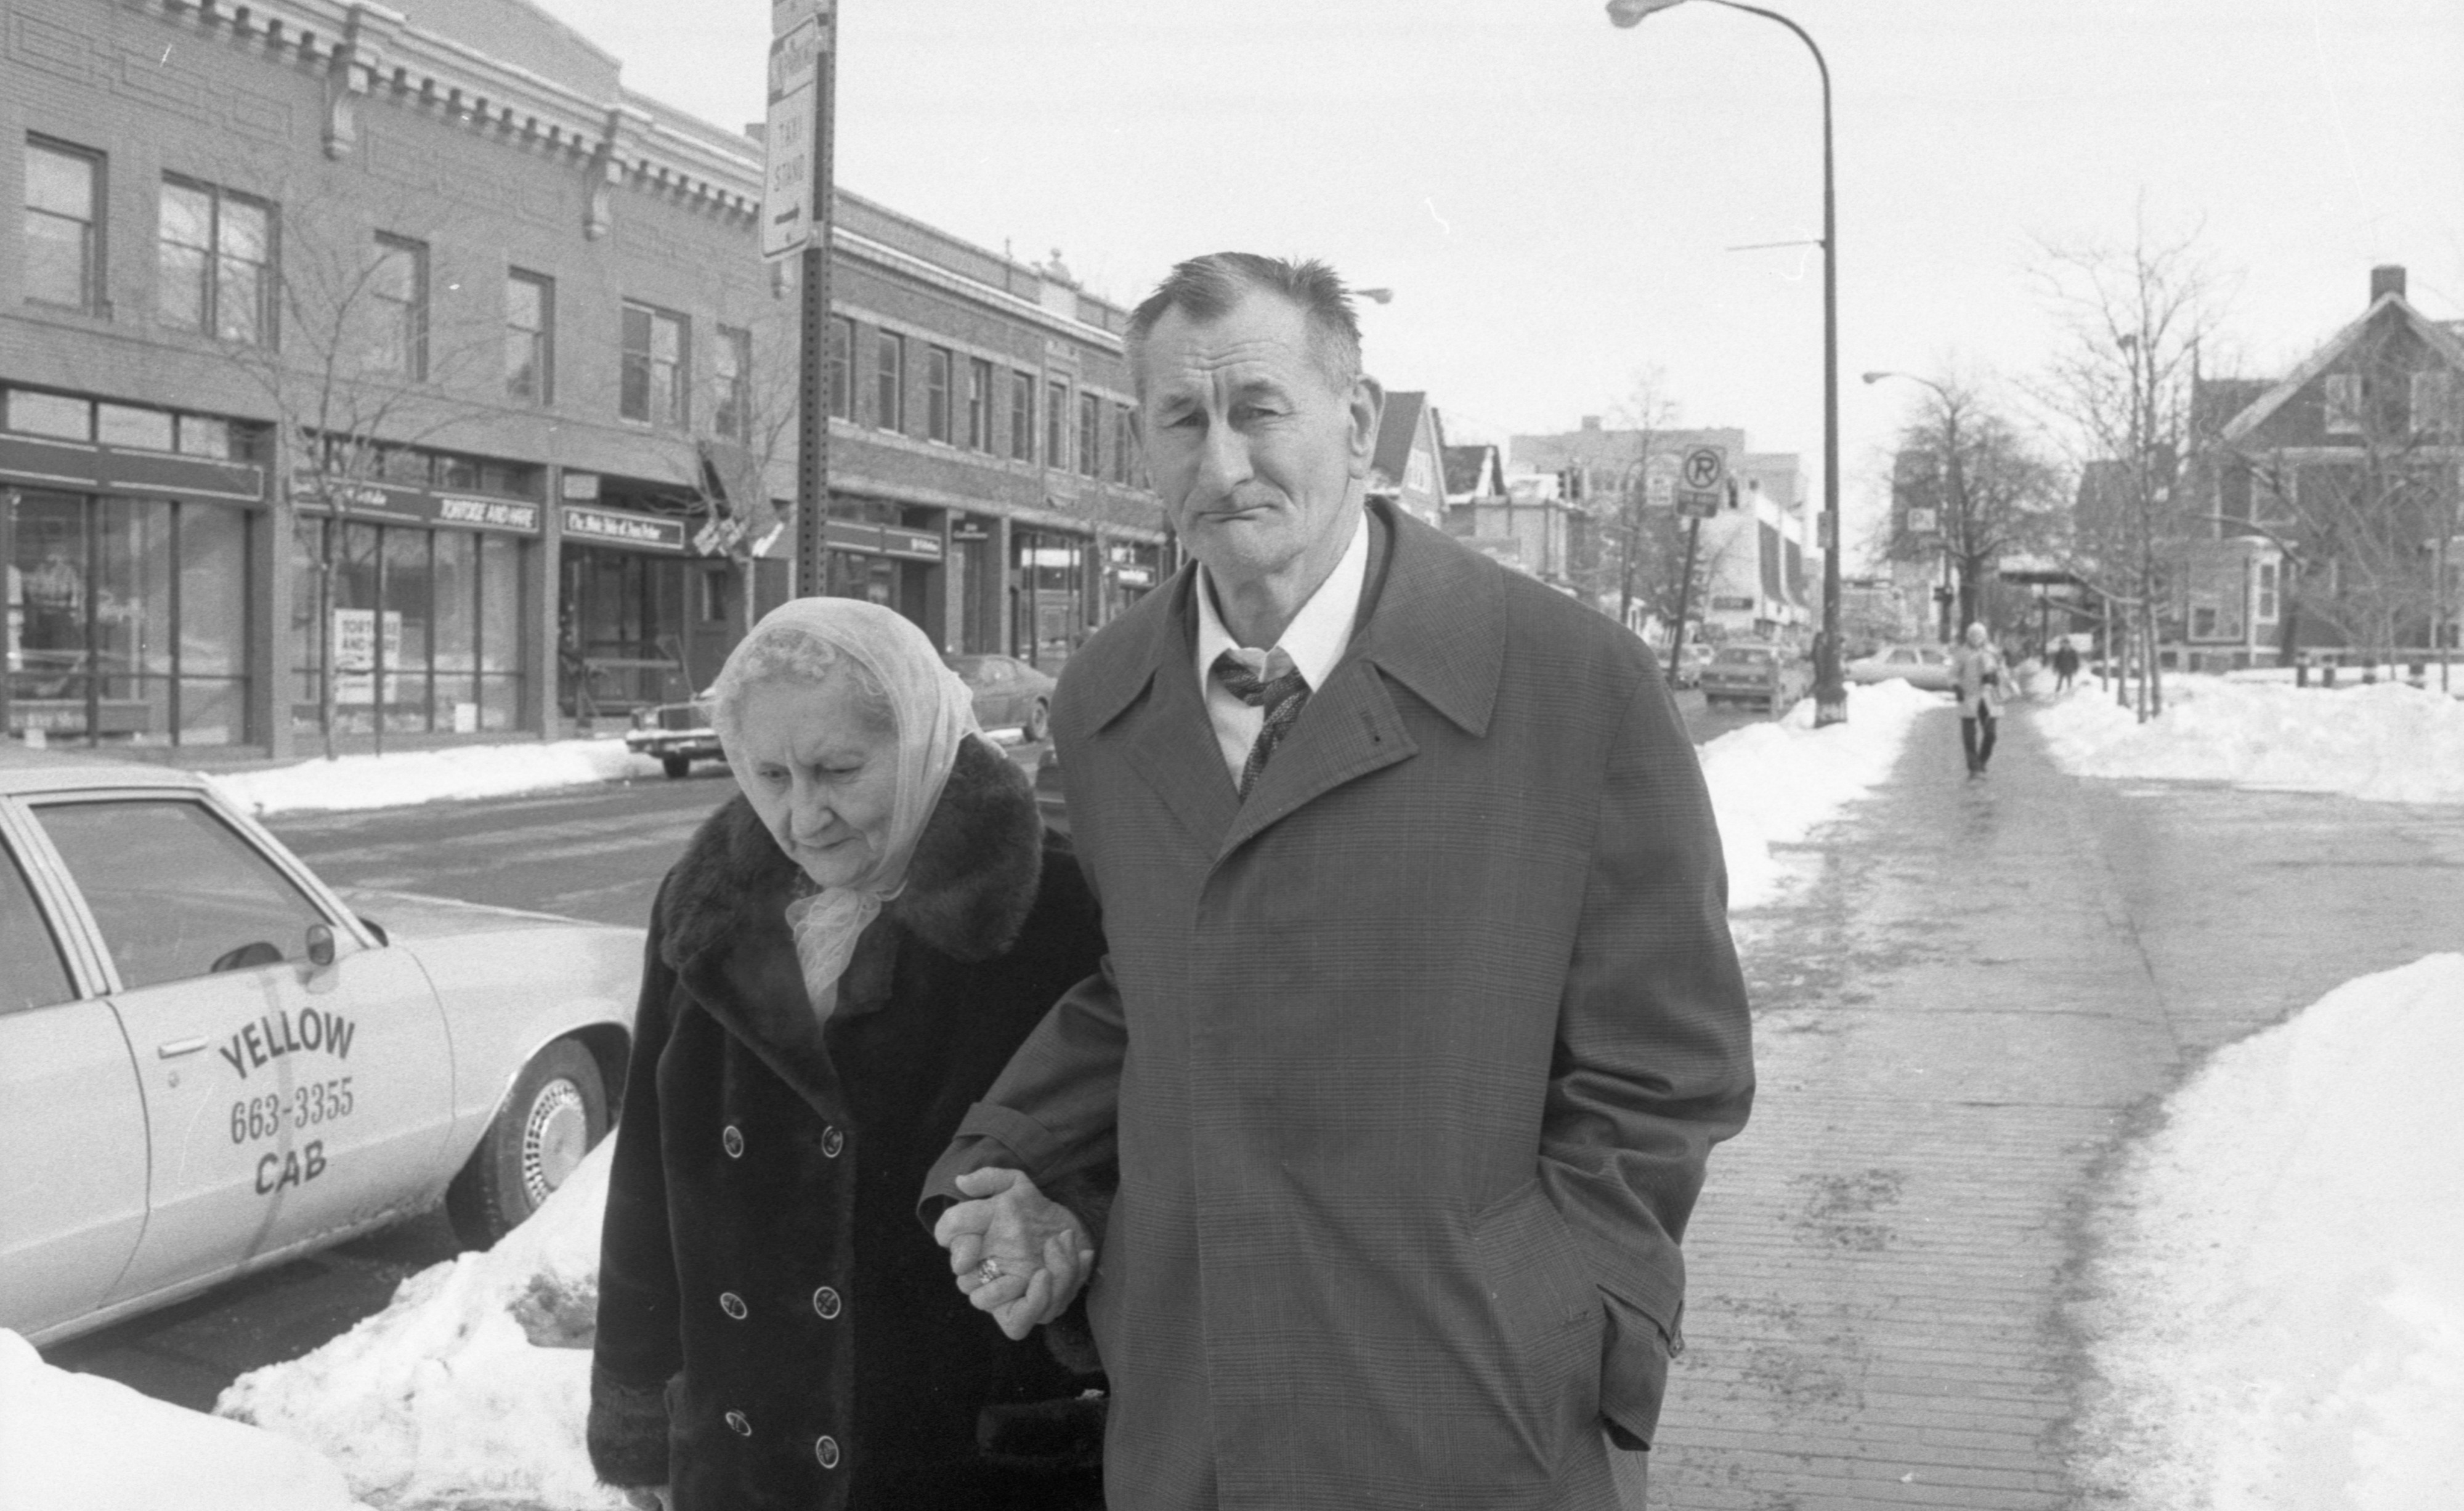 Louis Molitoris & His Sister Leave Federal Court, February 1984 image